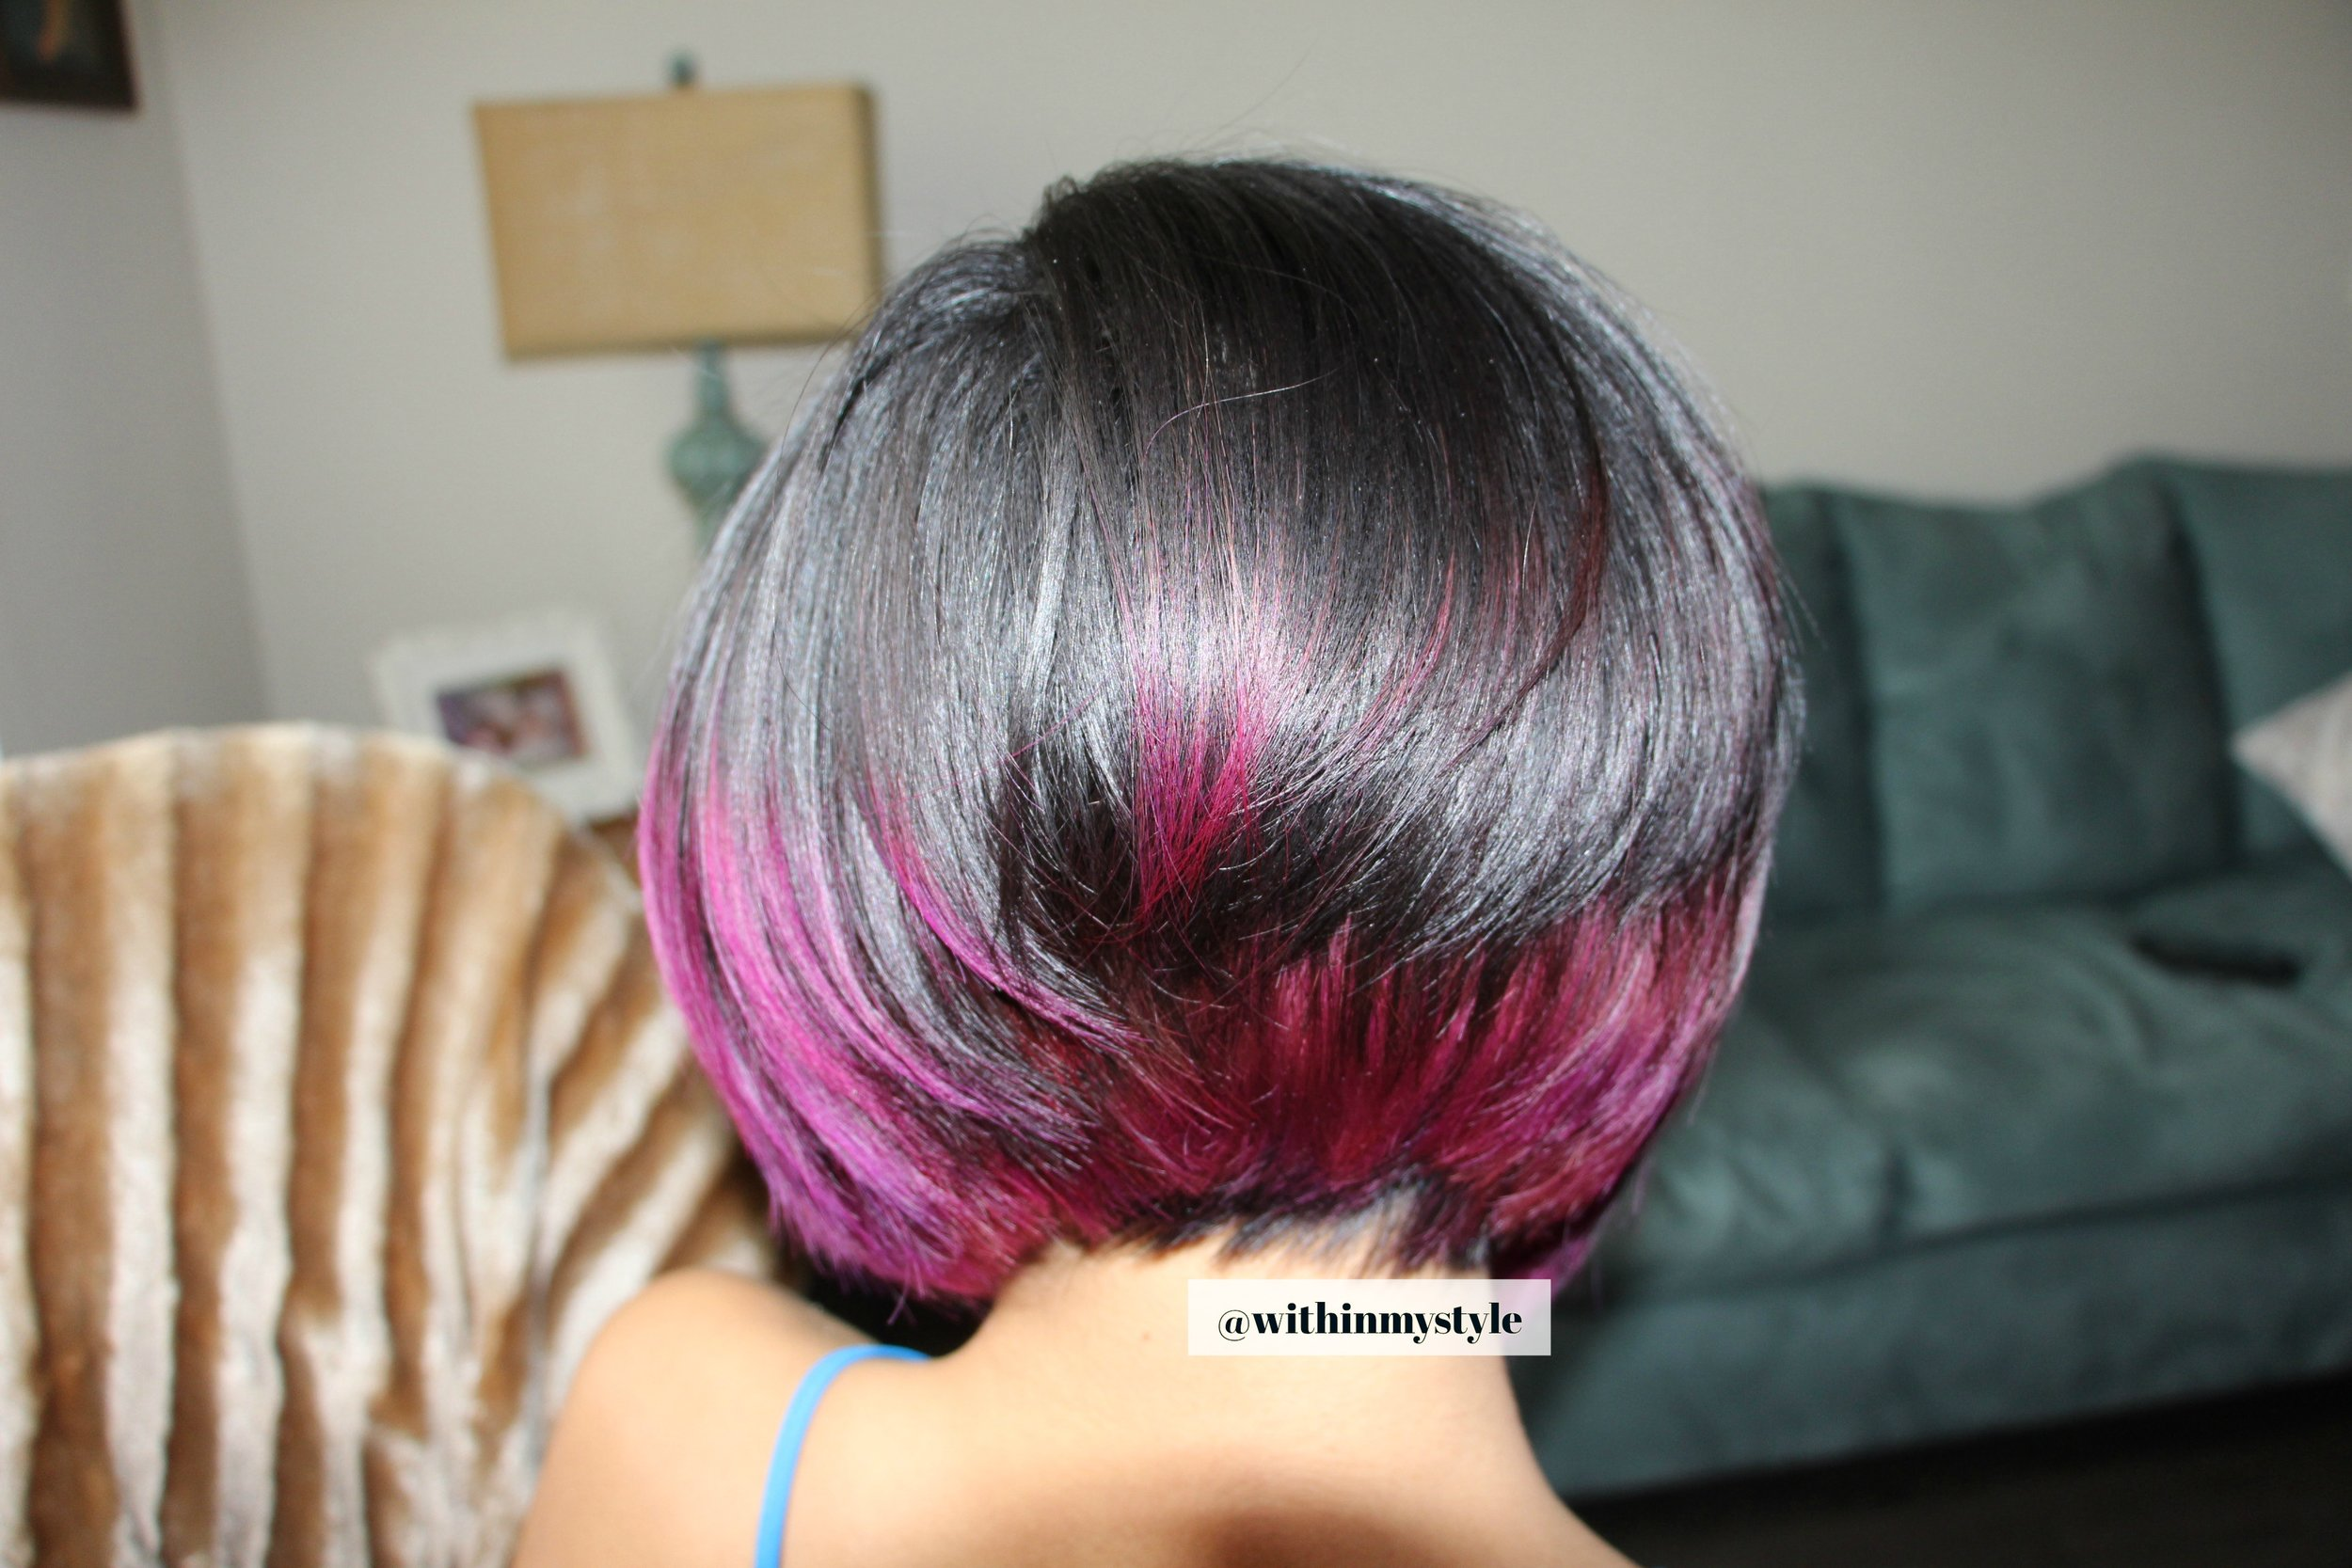 Have you ever seen treated hair look this shine?